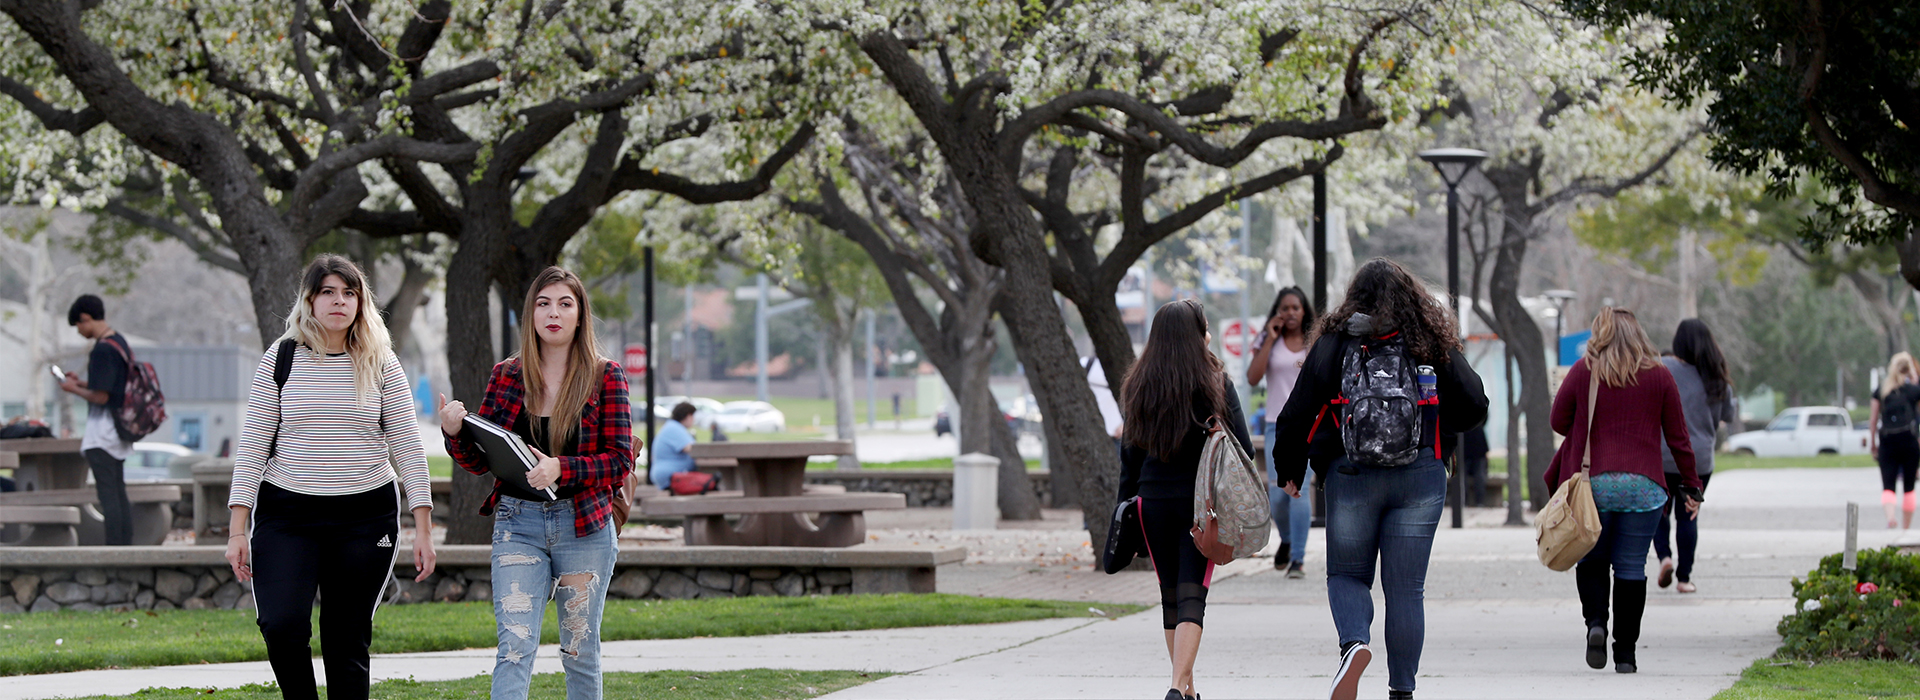 CSUSB listed in U.S. News & World Report's Best Online Programs Rankings